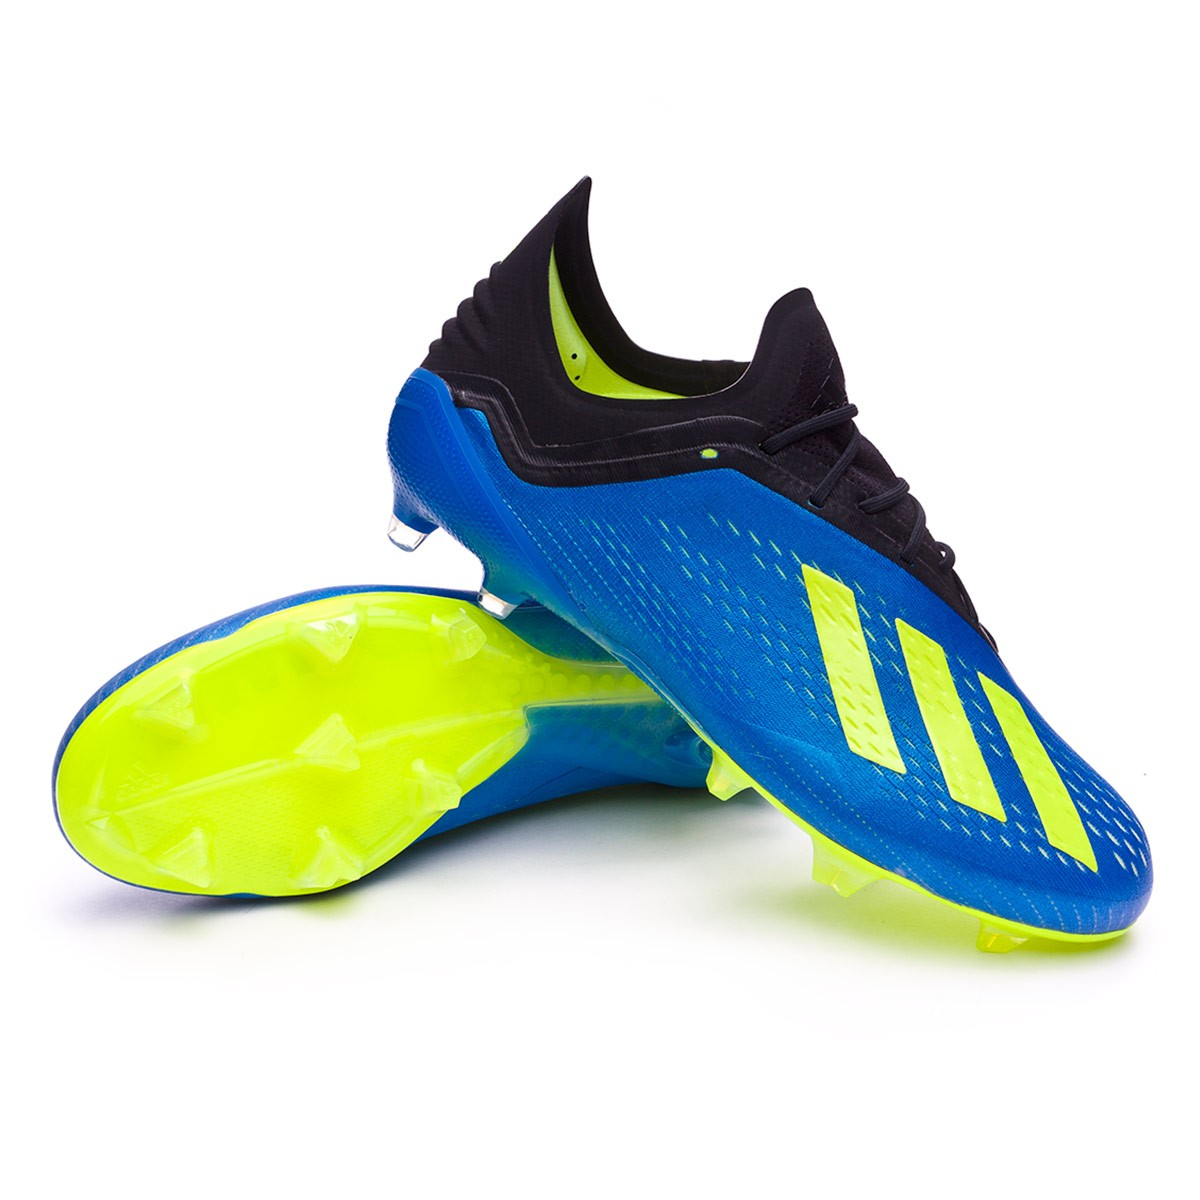 best website 78570 d617e Boot adidas X 18.1 FG Foot blue-Solar yellow-Black - Soloporteros es ahora  F  tbol Emotion